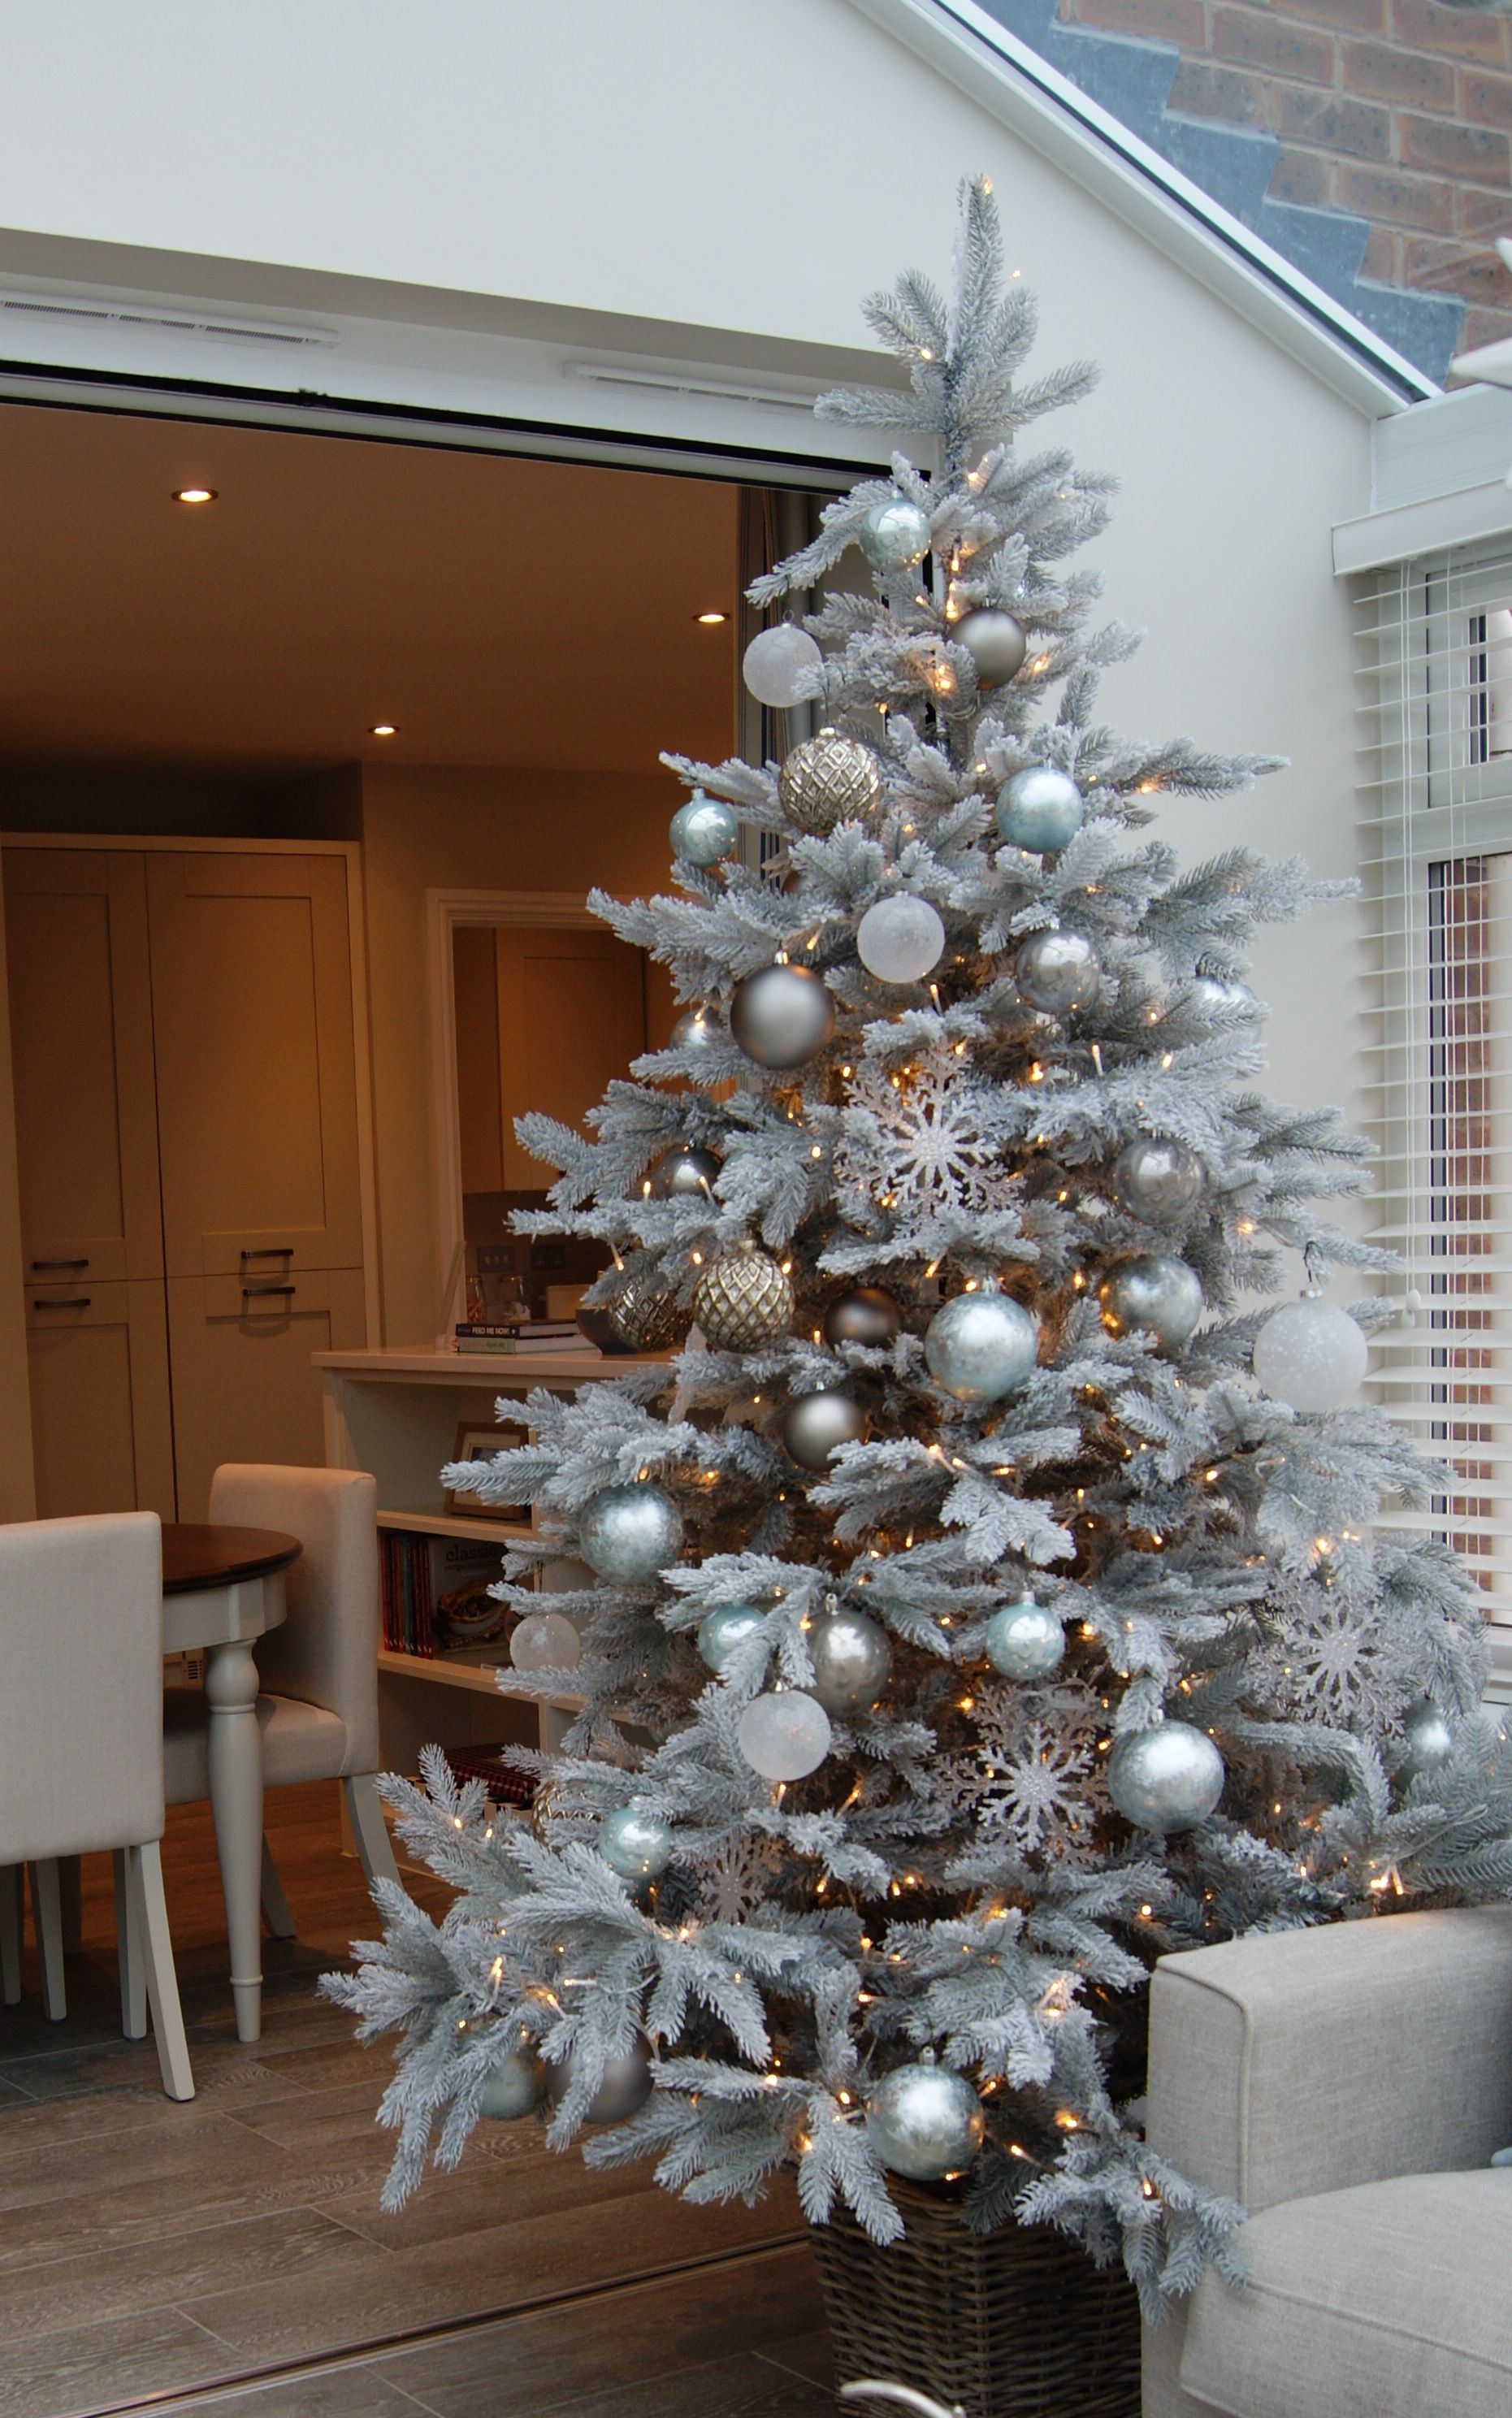 Winter Wonderland Style Tree, With Frosted Baubles And Snowflake Decorations